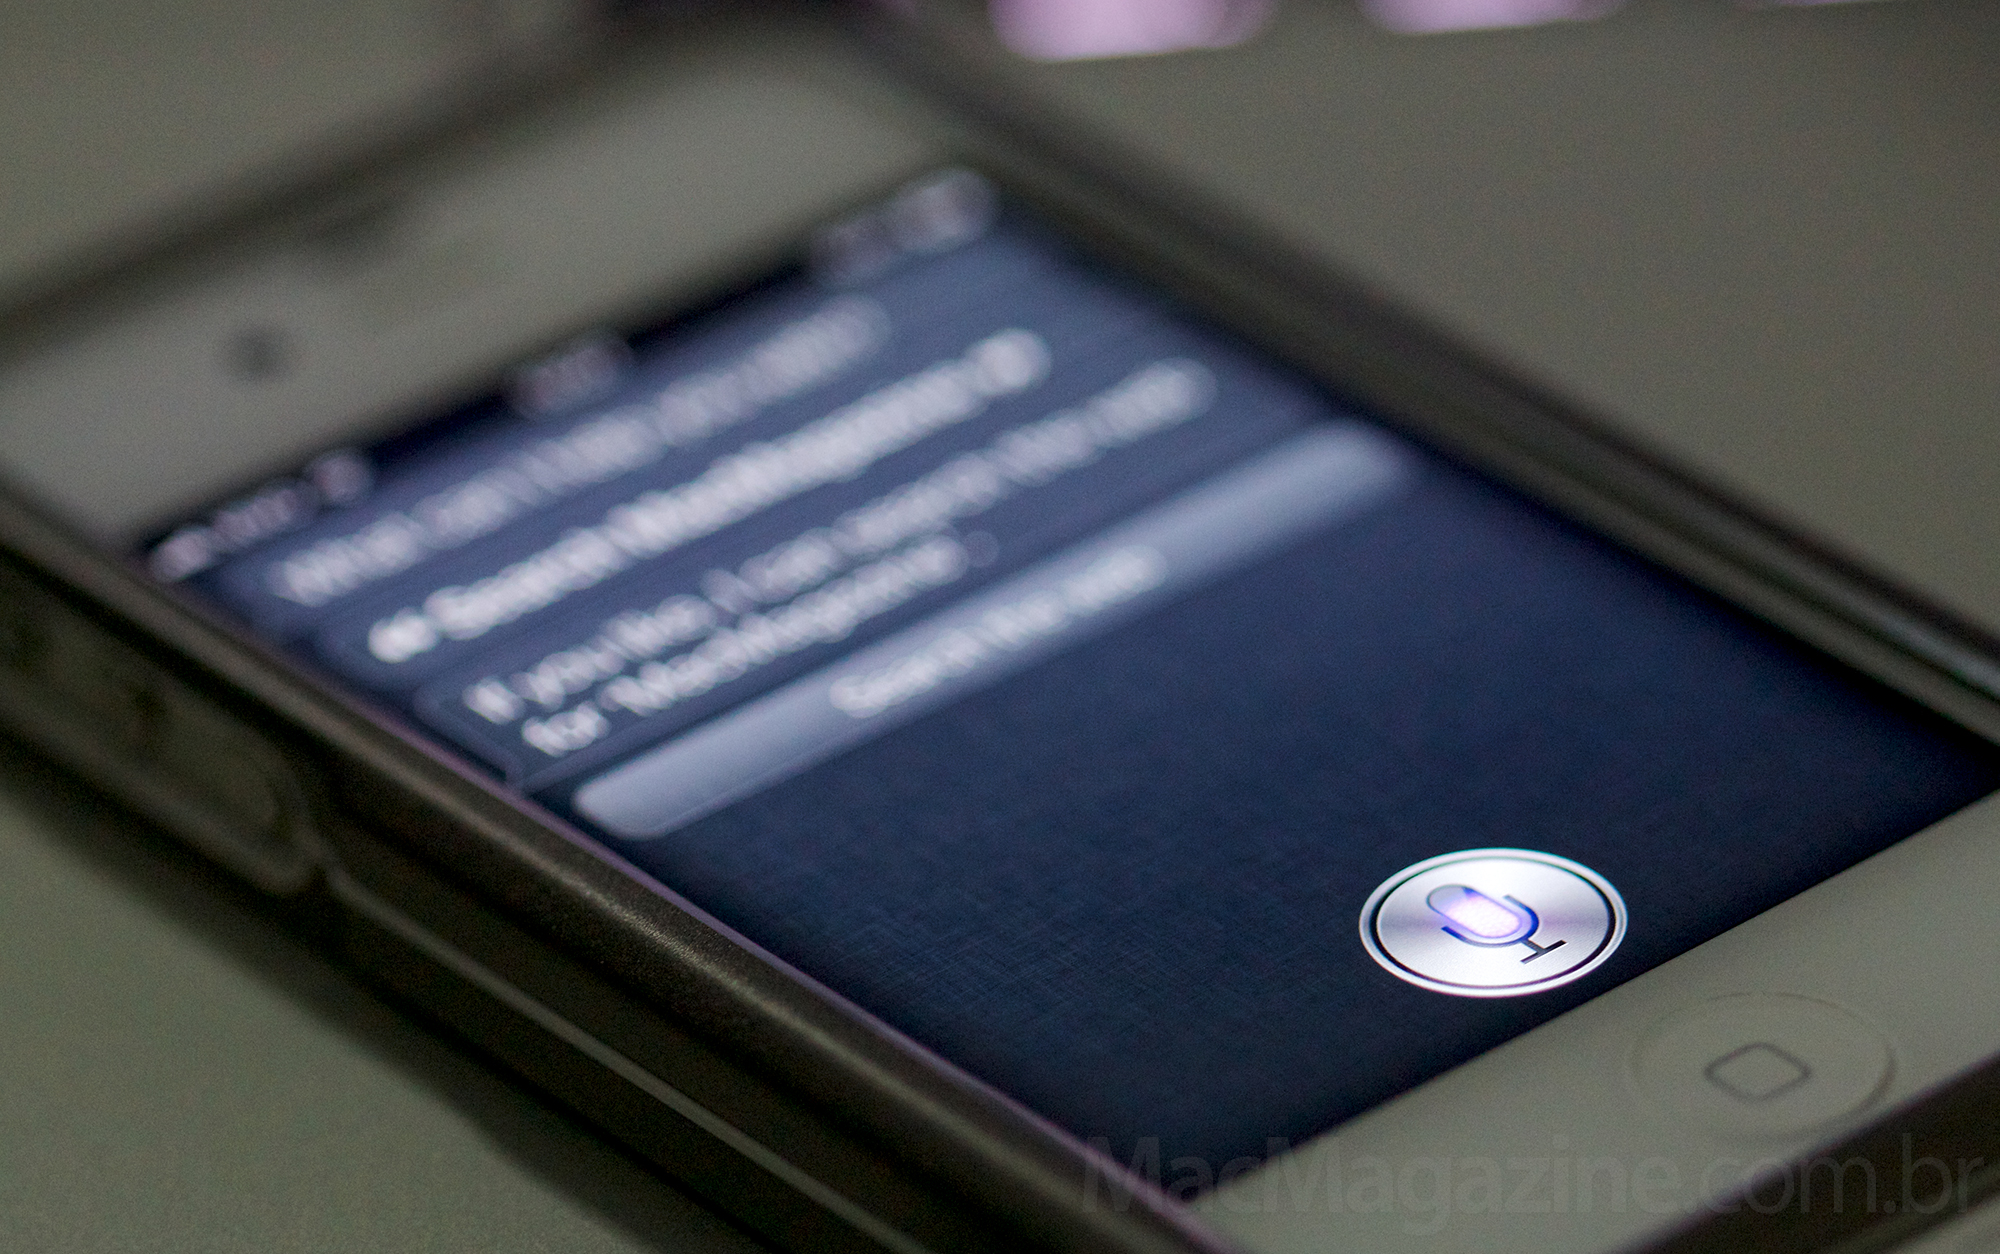 iPhone 4S com a Siri (by MacMagazine)